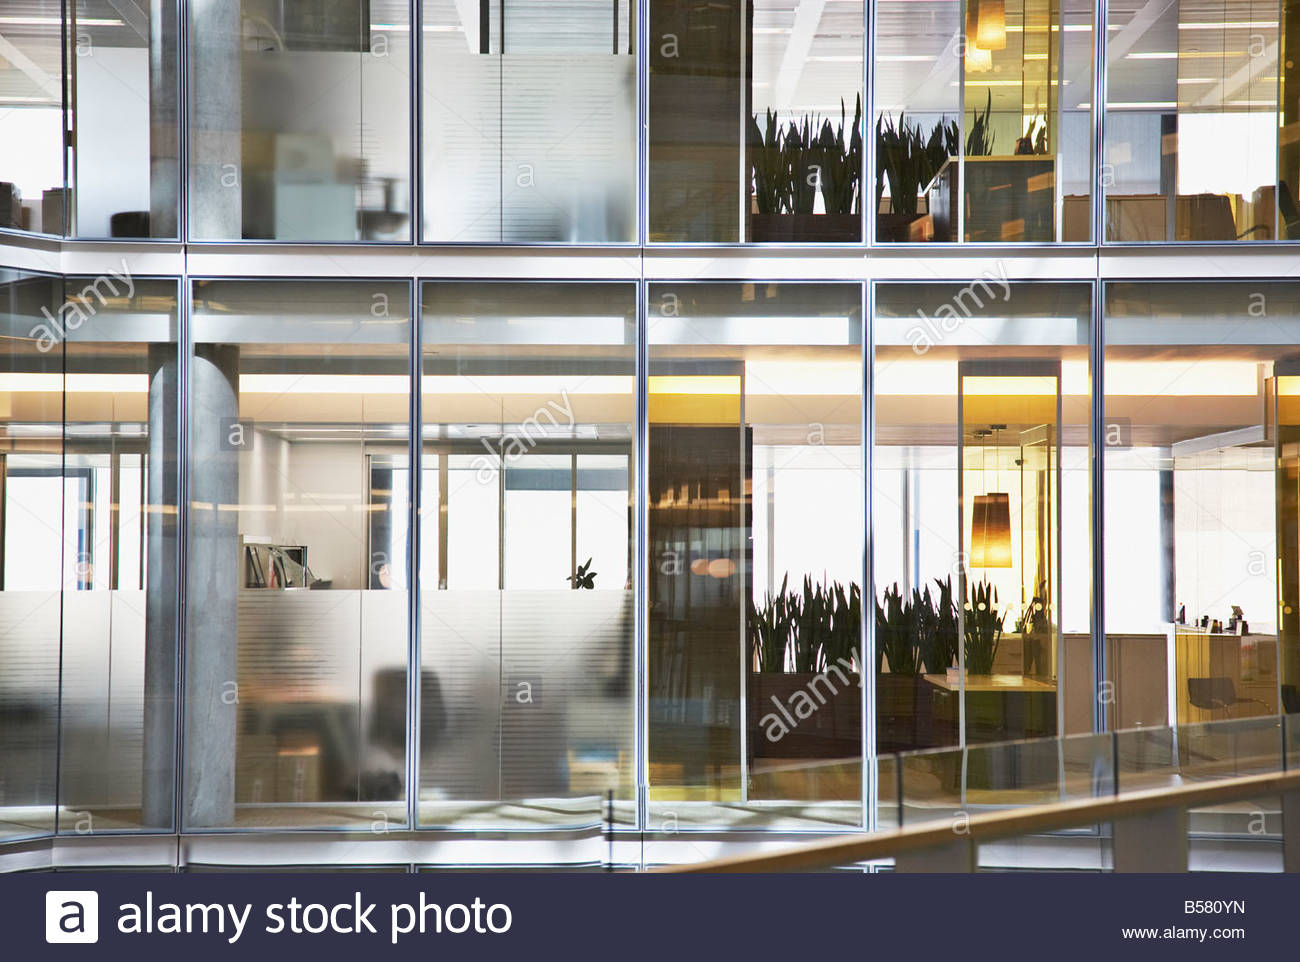 Office building after hours - Stock Image